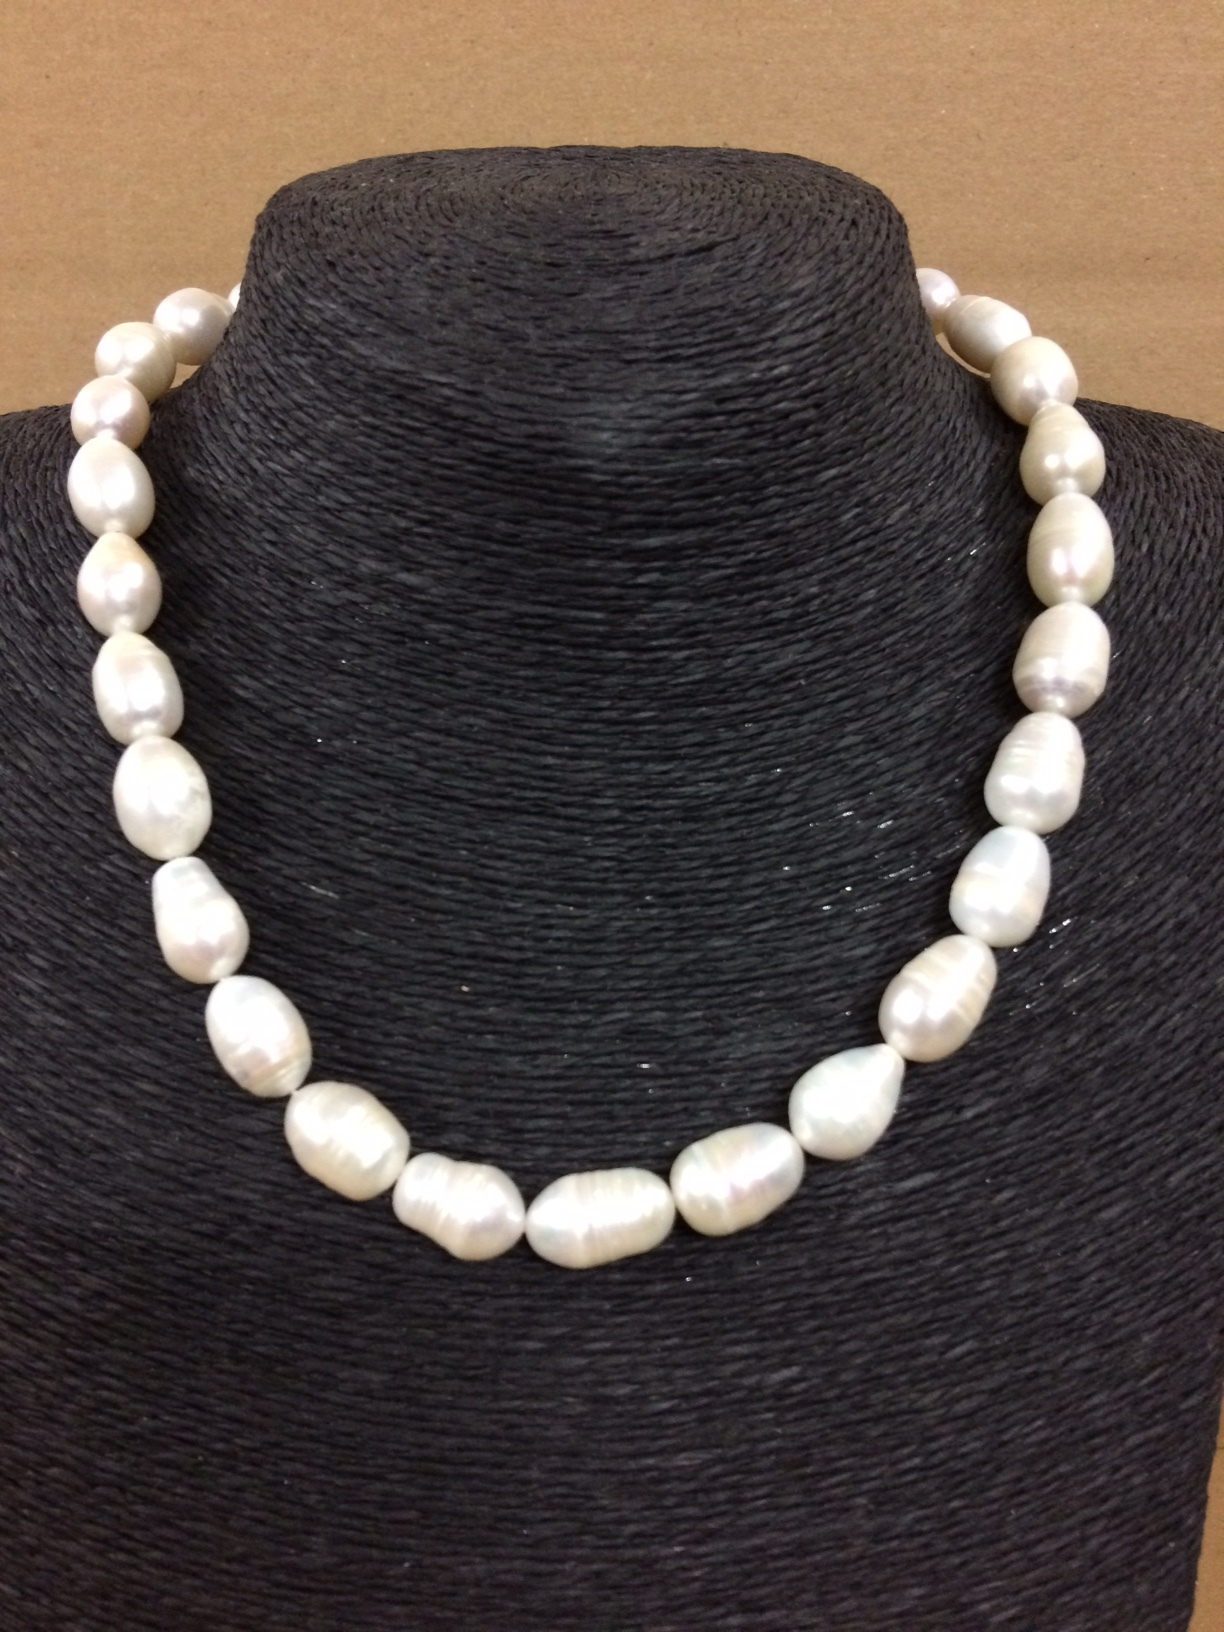 susan-shaw-necklace-pearls-only